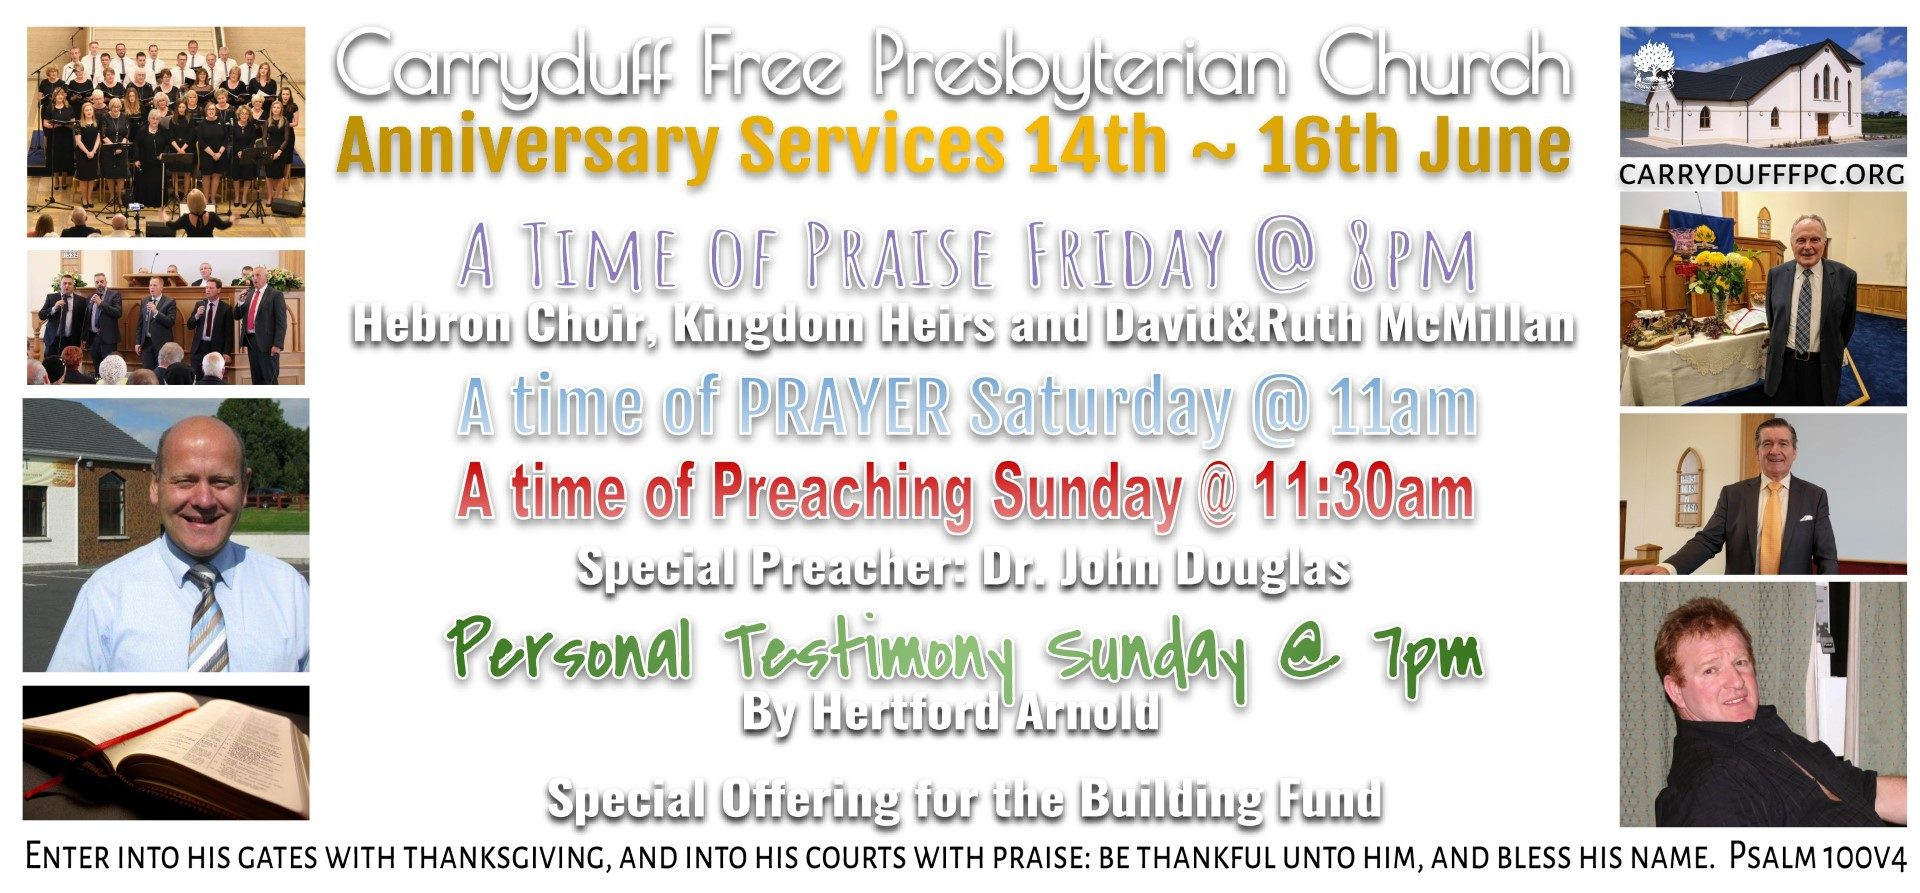 Invitation to our Anniversary Services – Carryduff Free Presbyterian